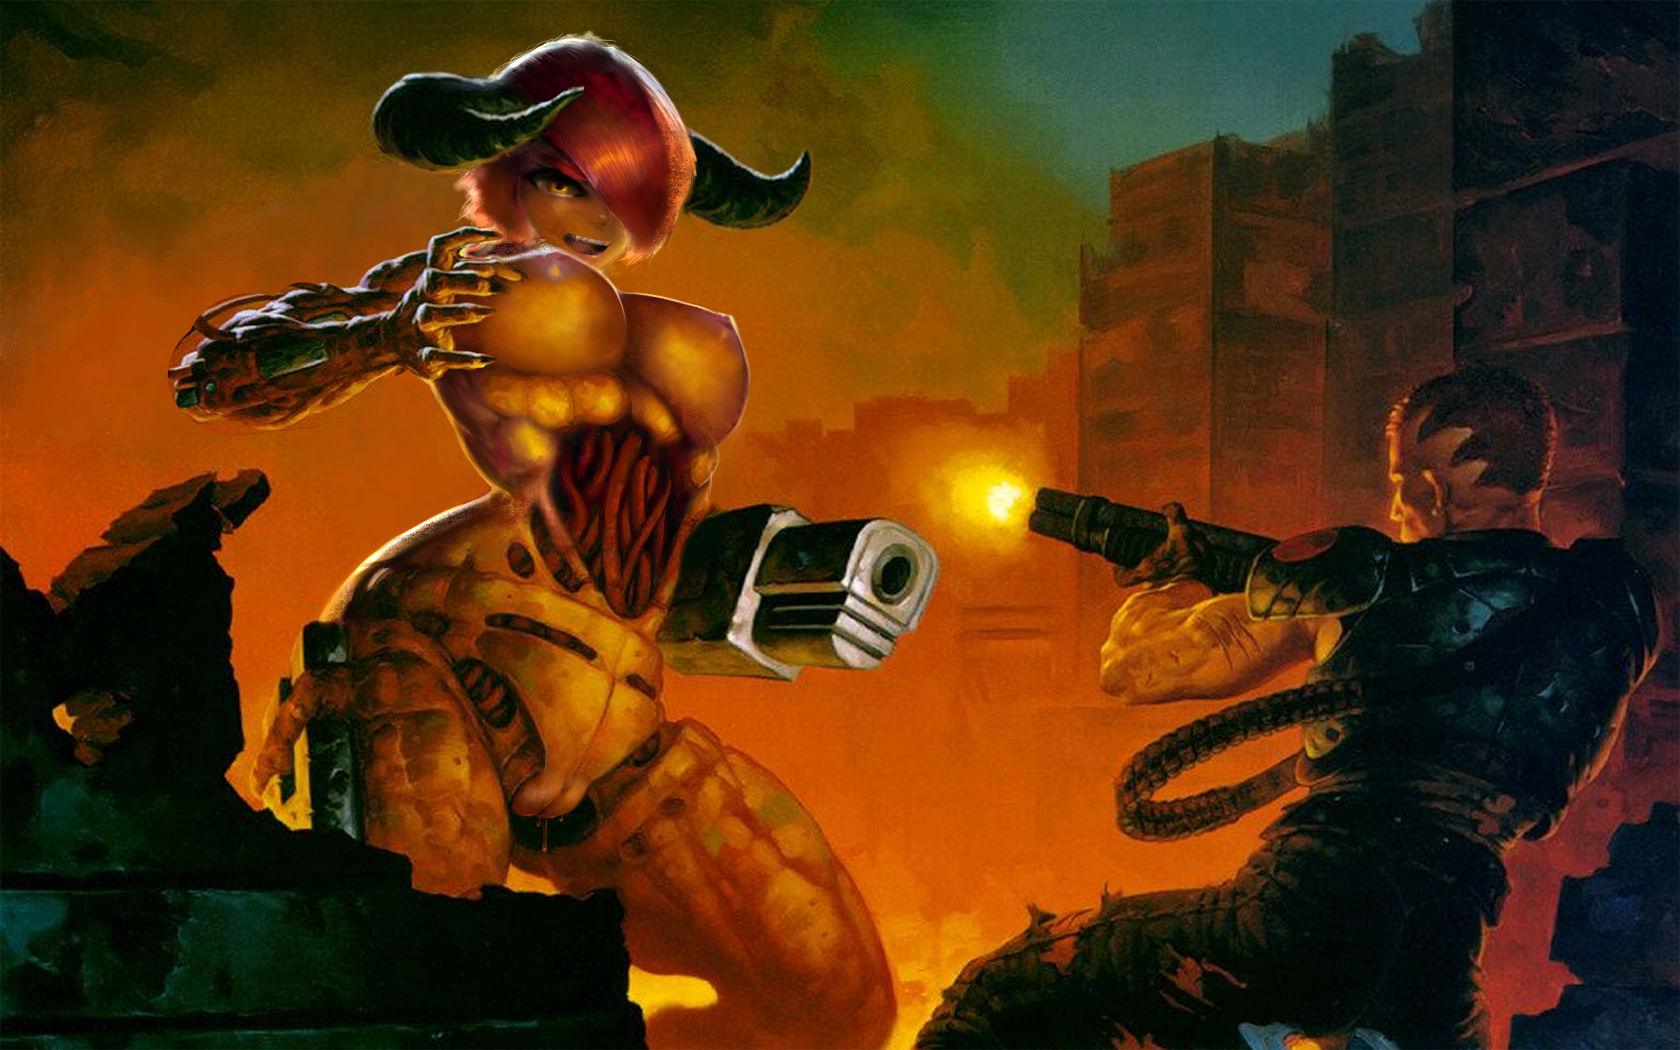 Naked doom mod erotic pic